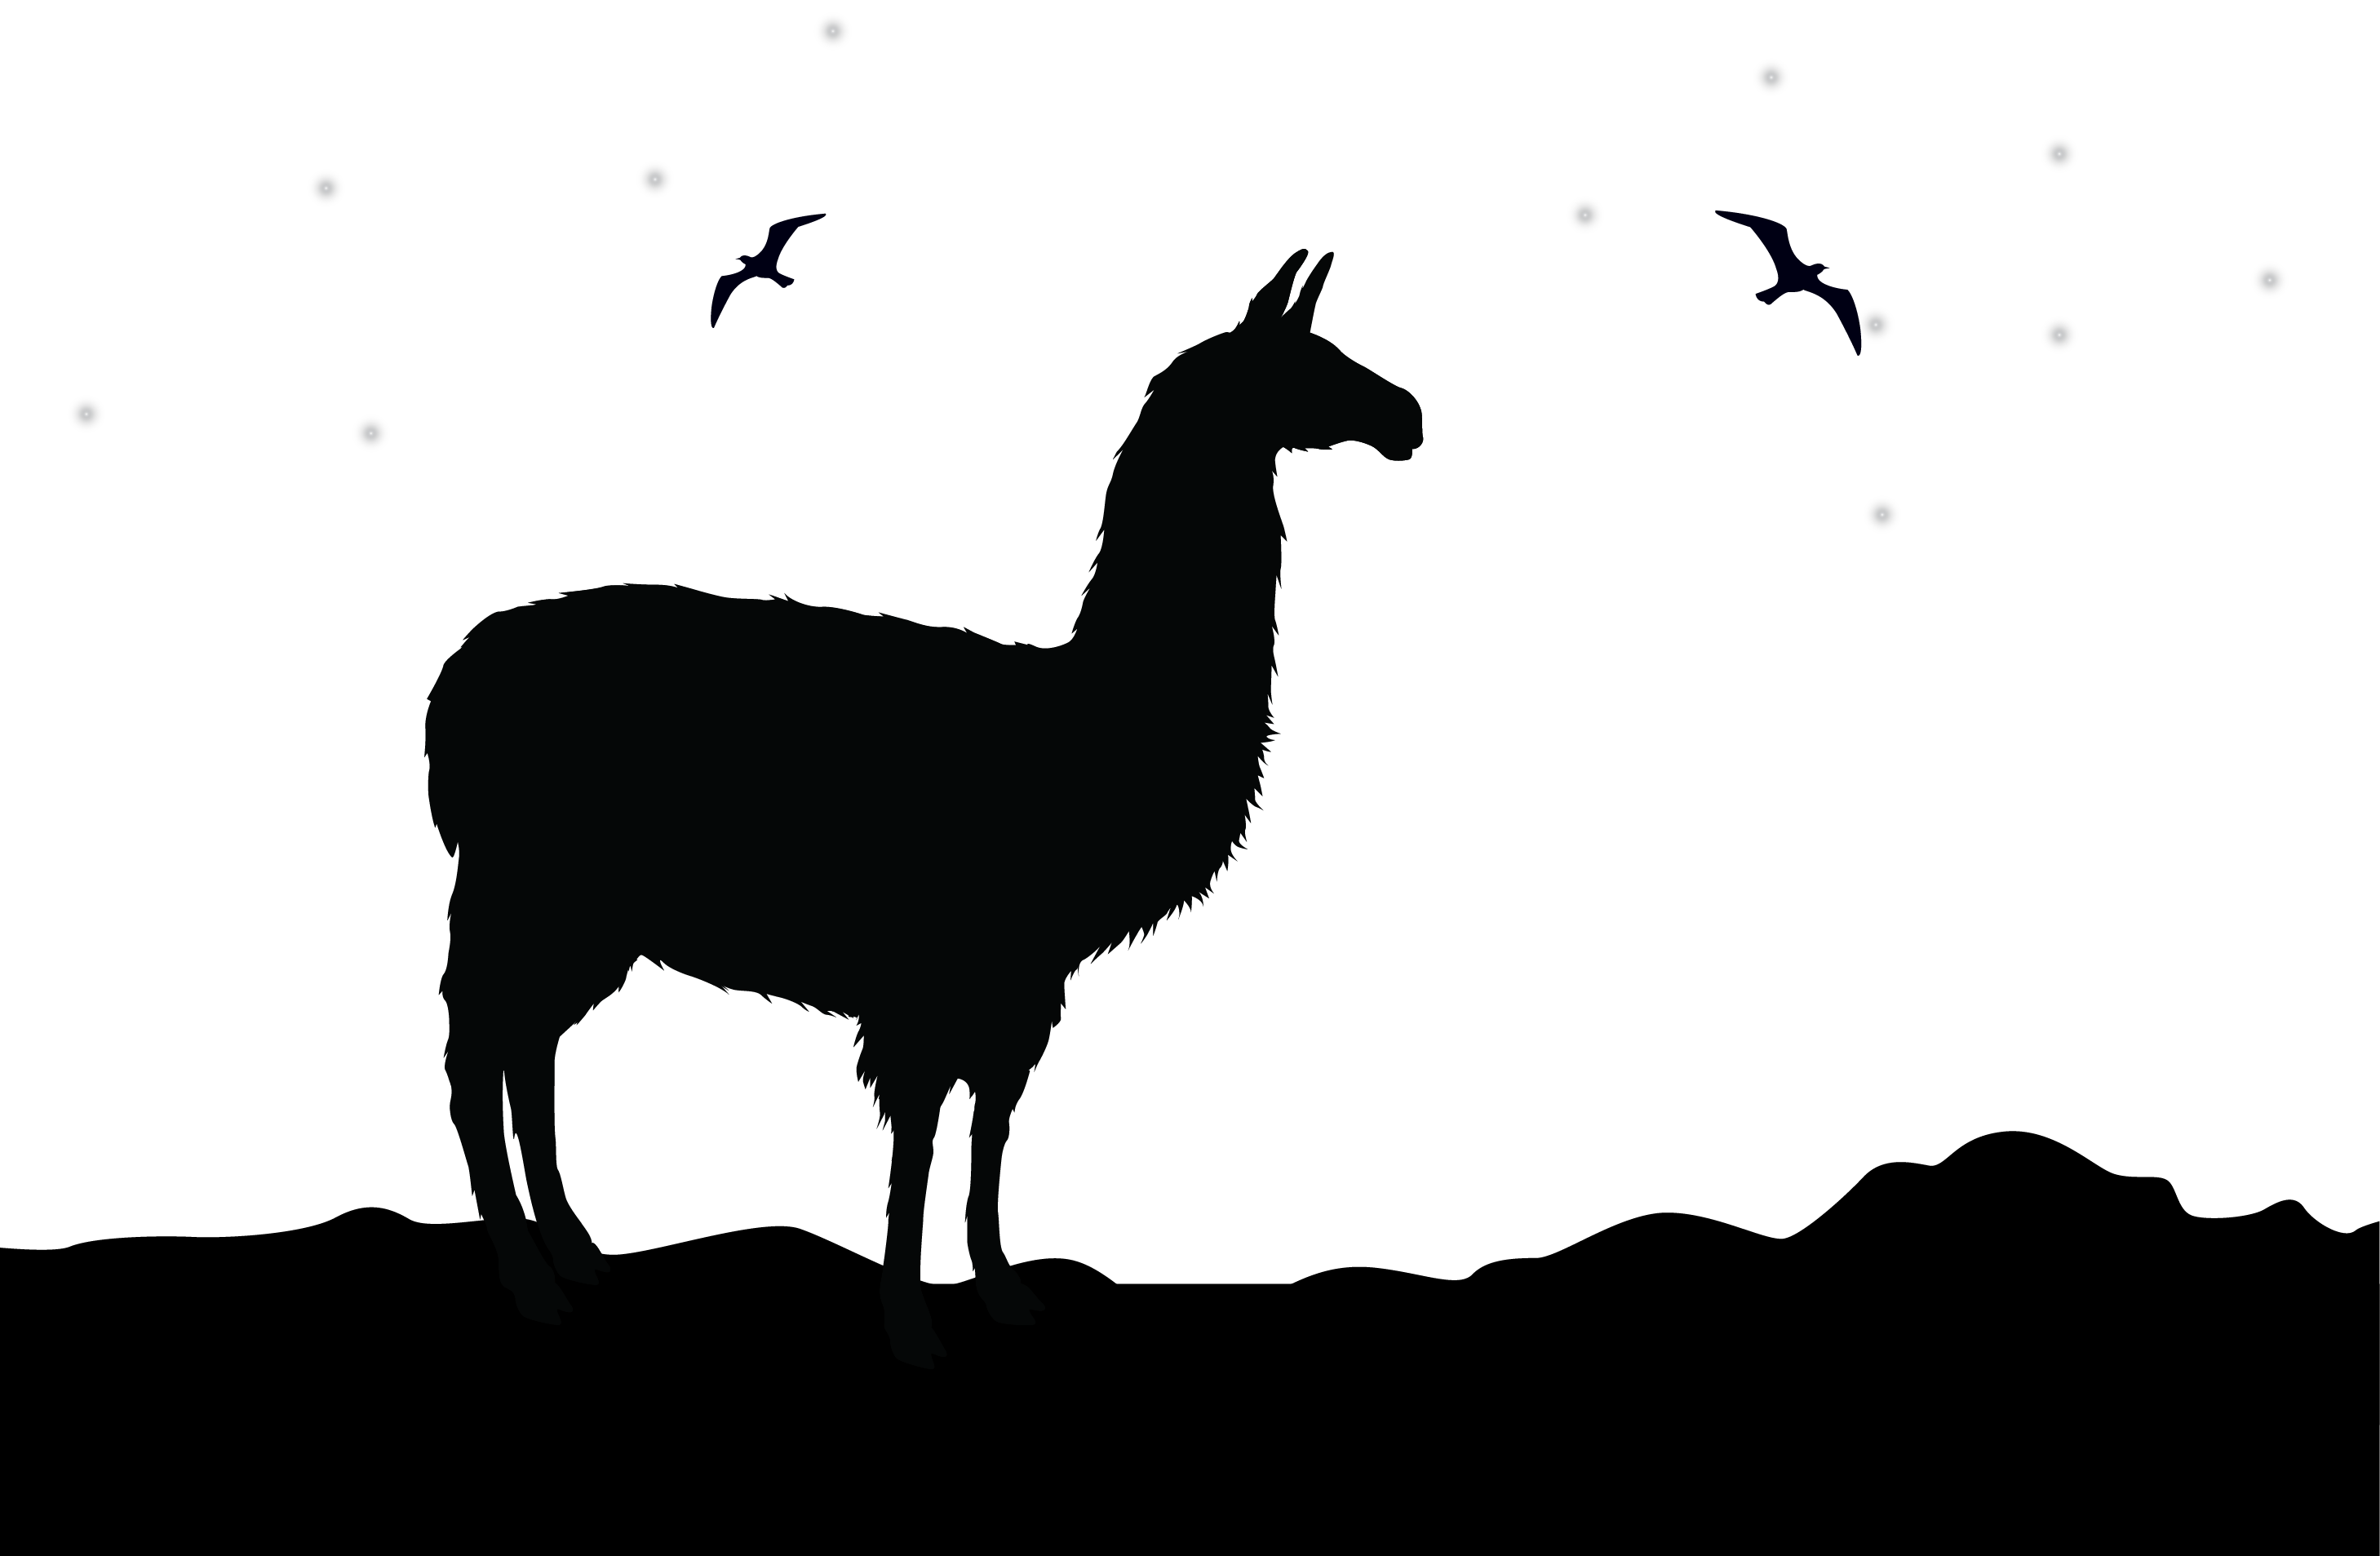 Llama face drawing at. Einstein clipart tongue